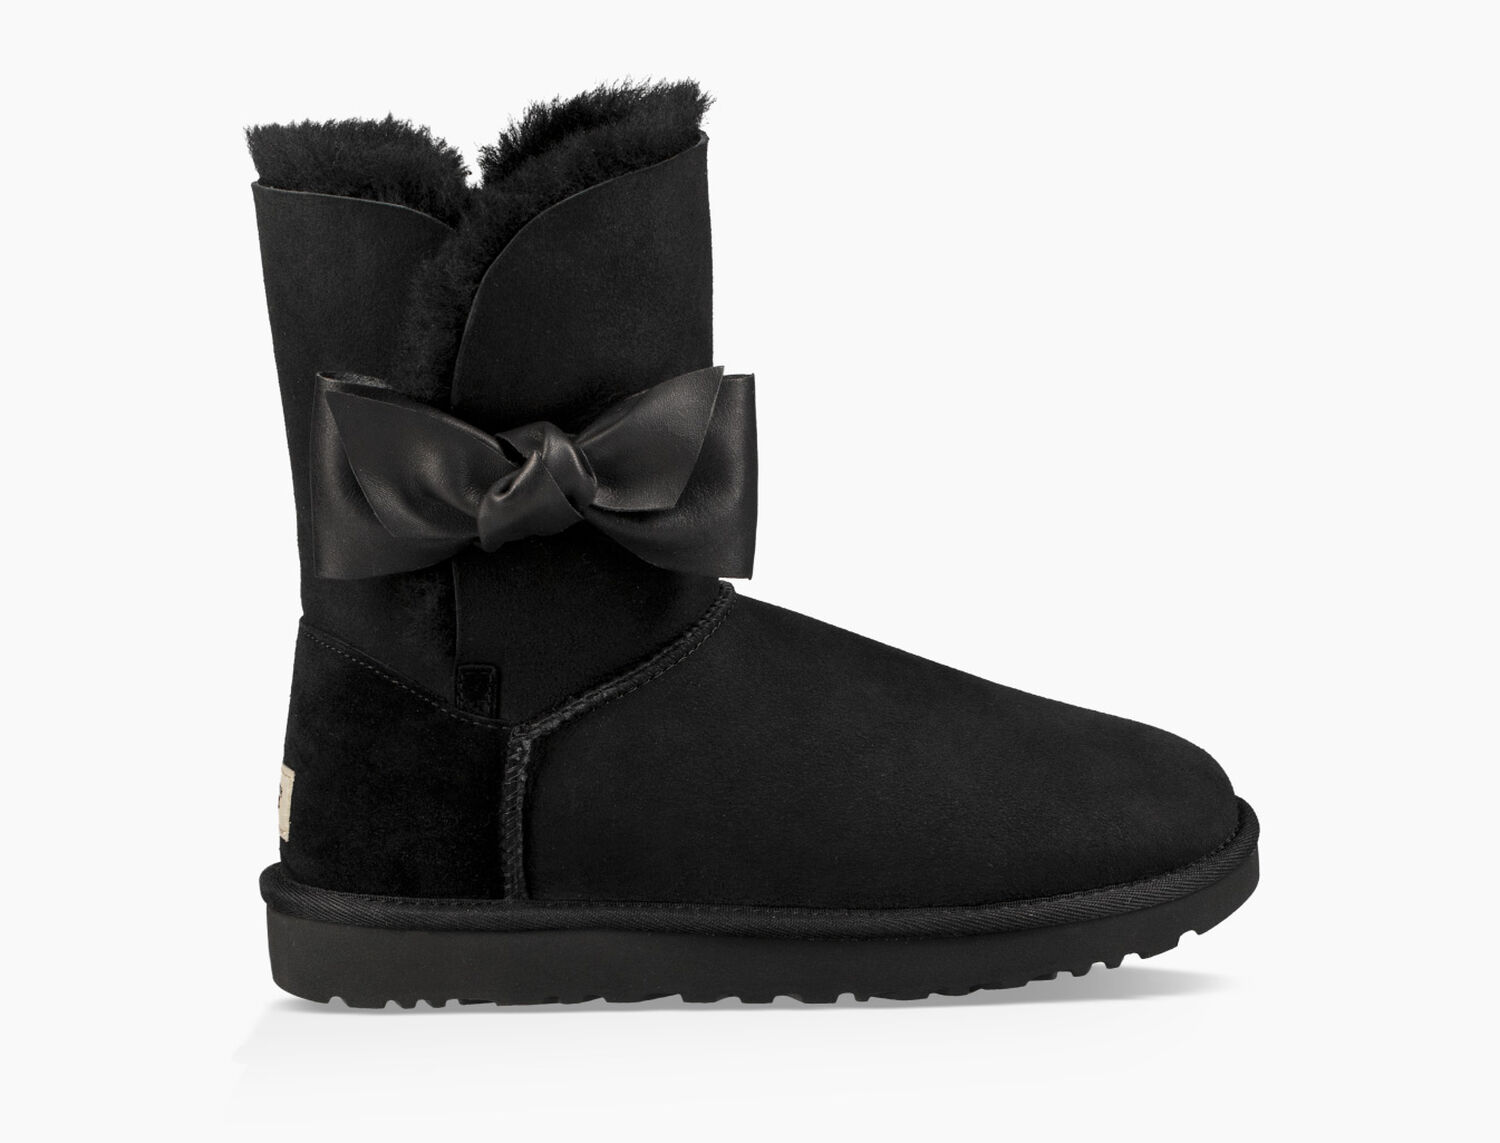 4dc4070cbe8 Women's Share this product Daelynn Boot